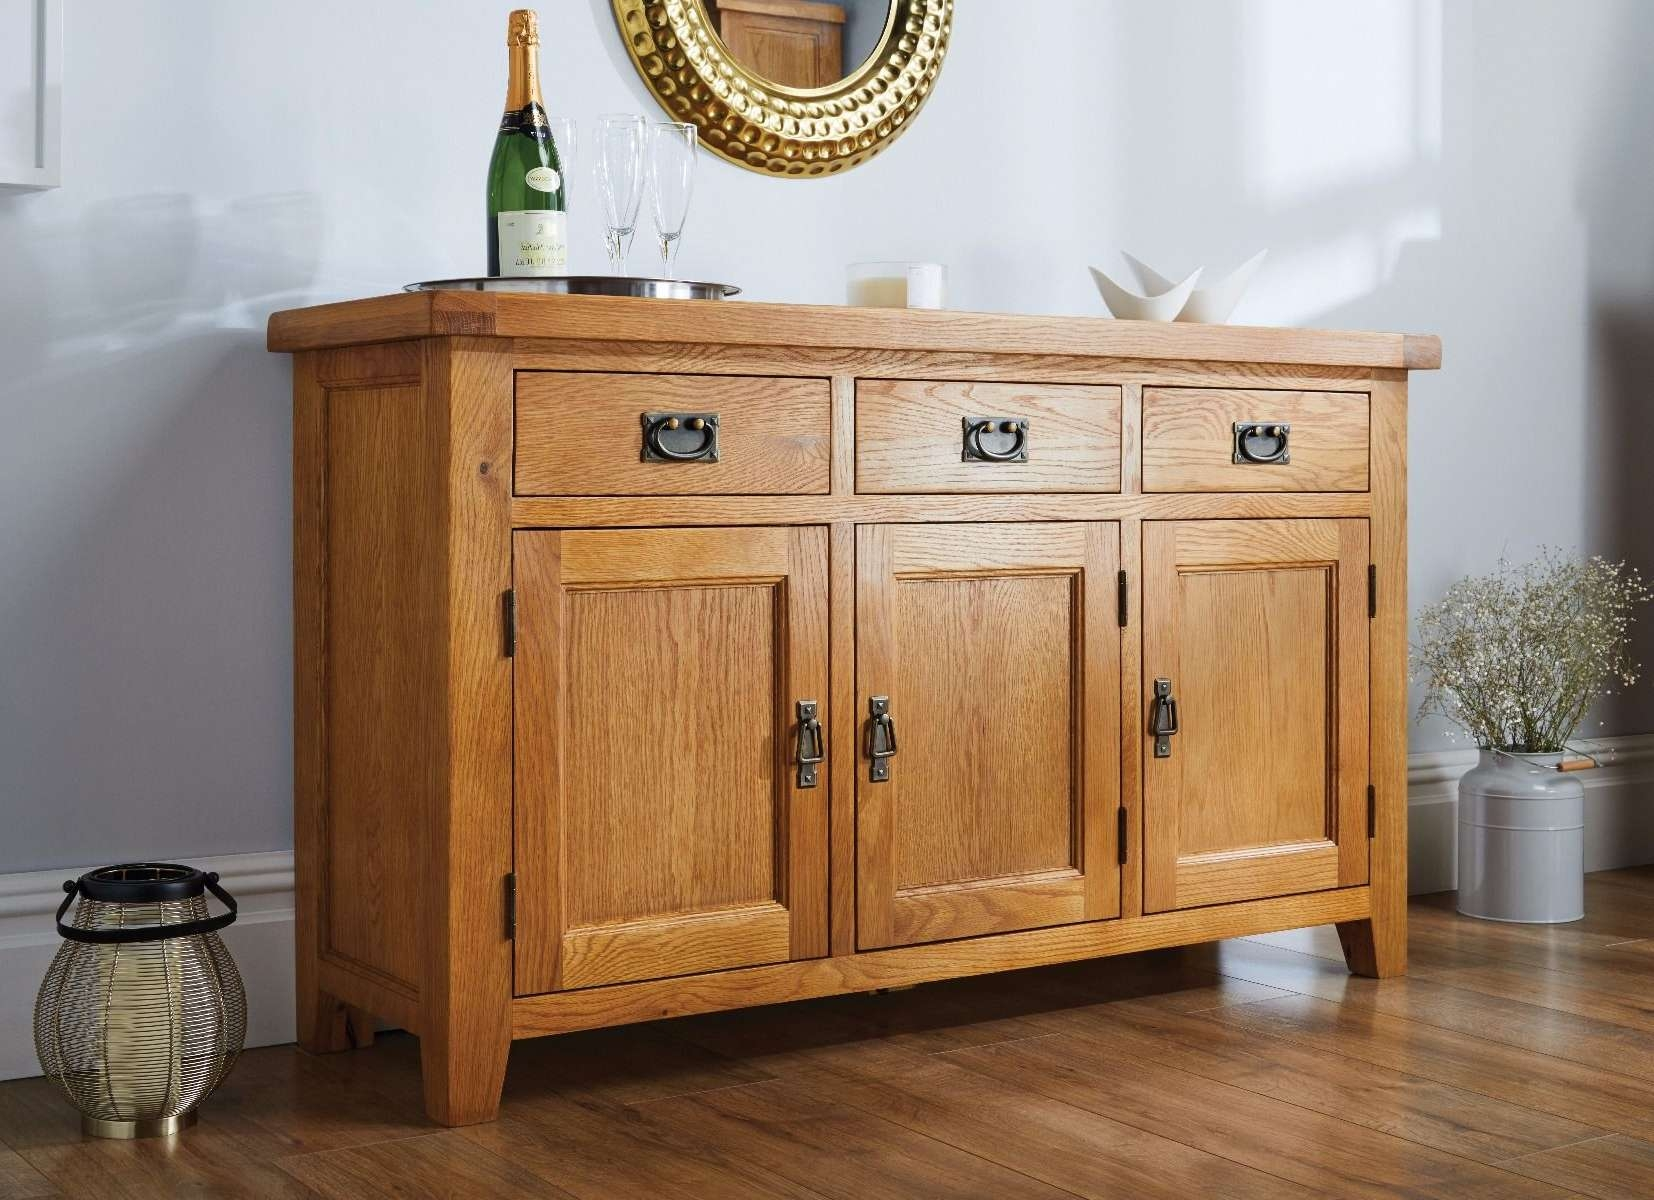 Sideboard Wit Stunning Image Of Industrial Sideboard With Drawers With Sideboard Wit Free